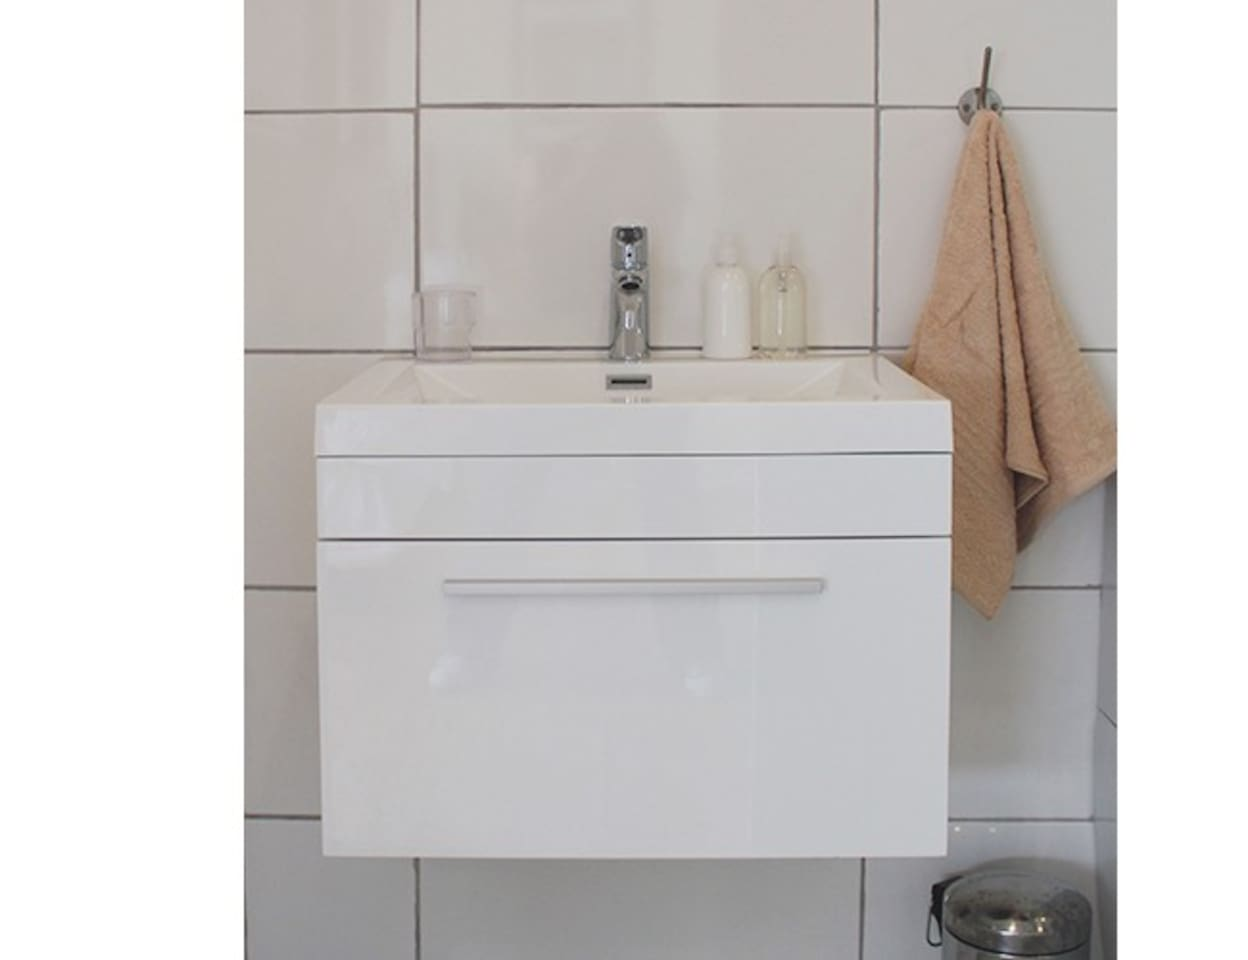 Reece Bathroom Cabinets Cape Sound Villas For Rent In Cape Town Western Cape South Africa